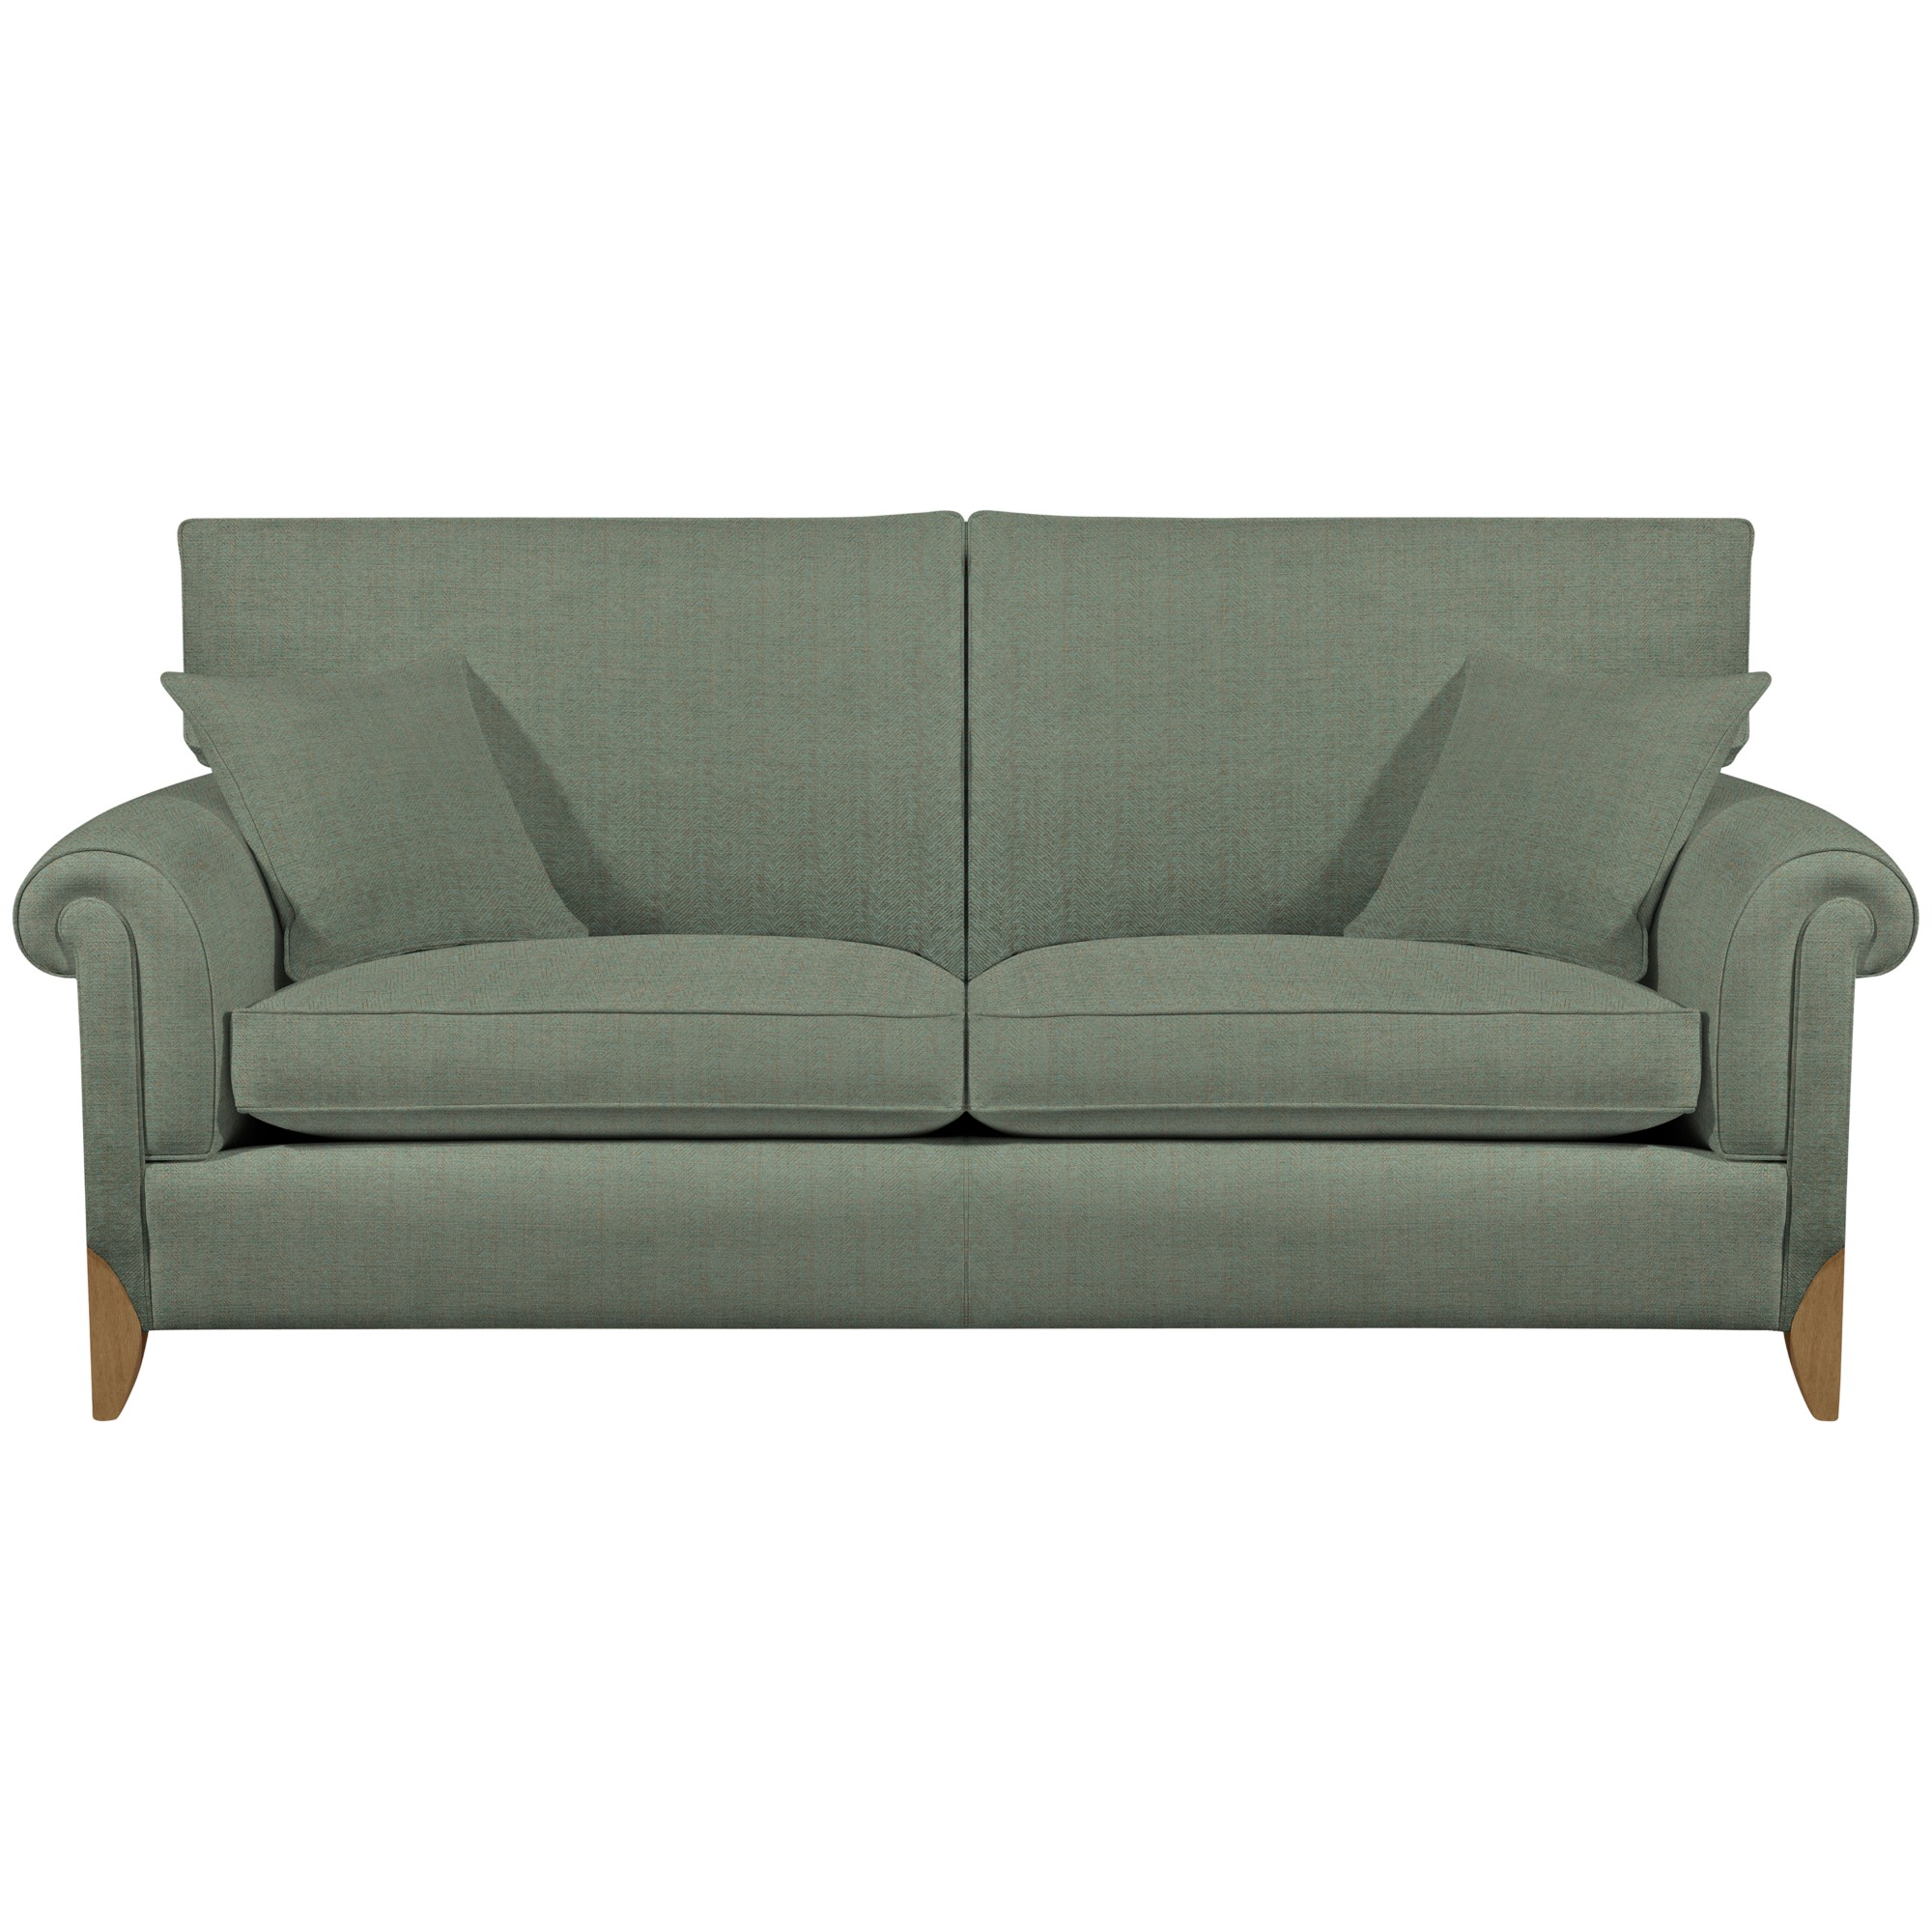 Duresta Cavendish Large Sofa 2 Scatter Cushions By John